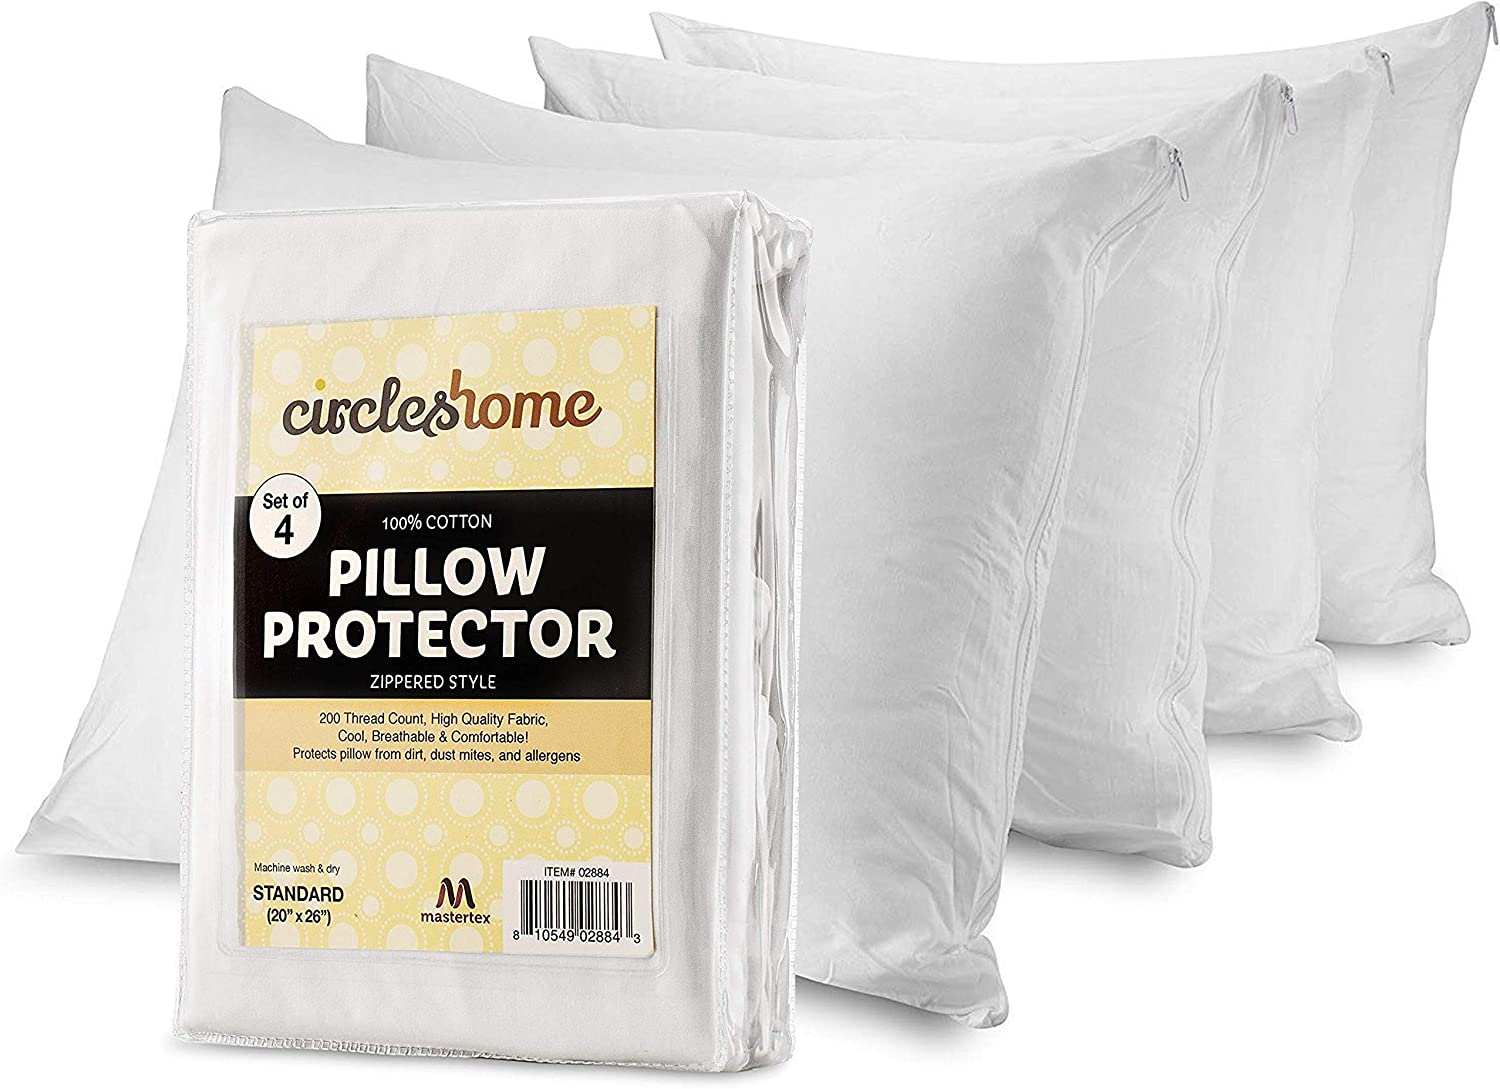 CIRCLESHOME Pillow Protectors 4 Pack Standard Zippered | 100% Cotton Breathable Pillow Covers | Protects from Dirt, Dust & Allergens | Hypoallergenic & Quiet (Standard - Set of 4-20x26): Home & Kitchen